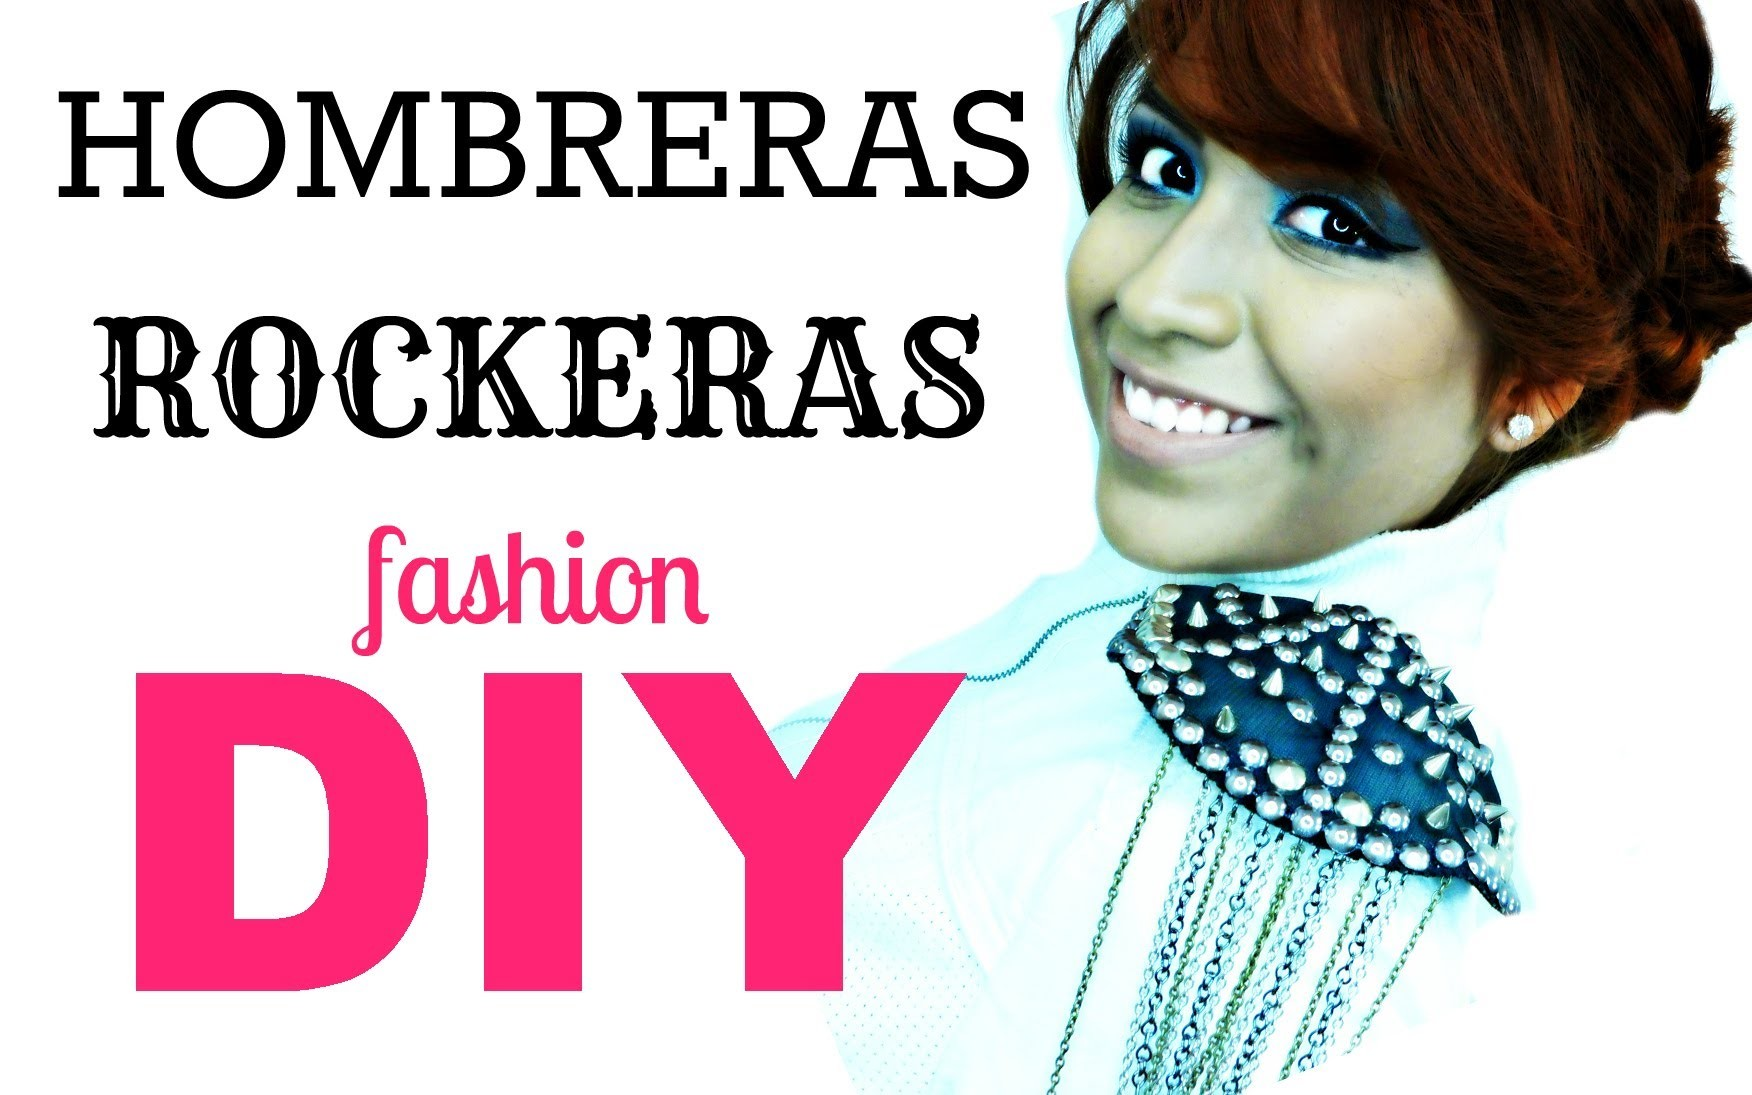 Fashion DIY: Hombreras Rockeras ♥ Royal LAMP